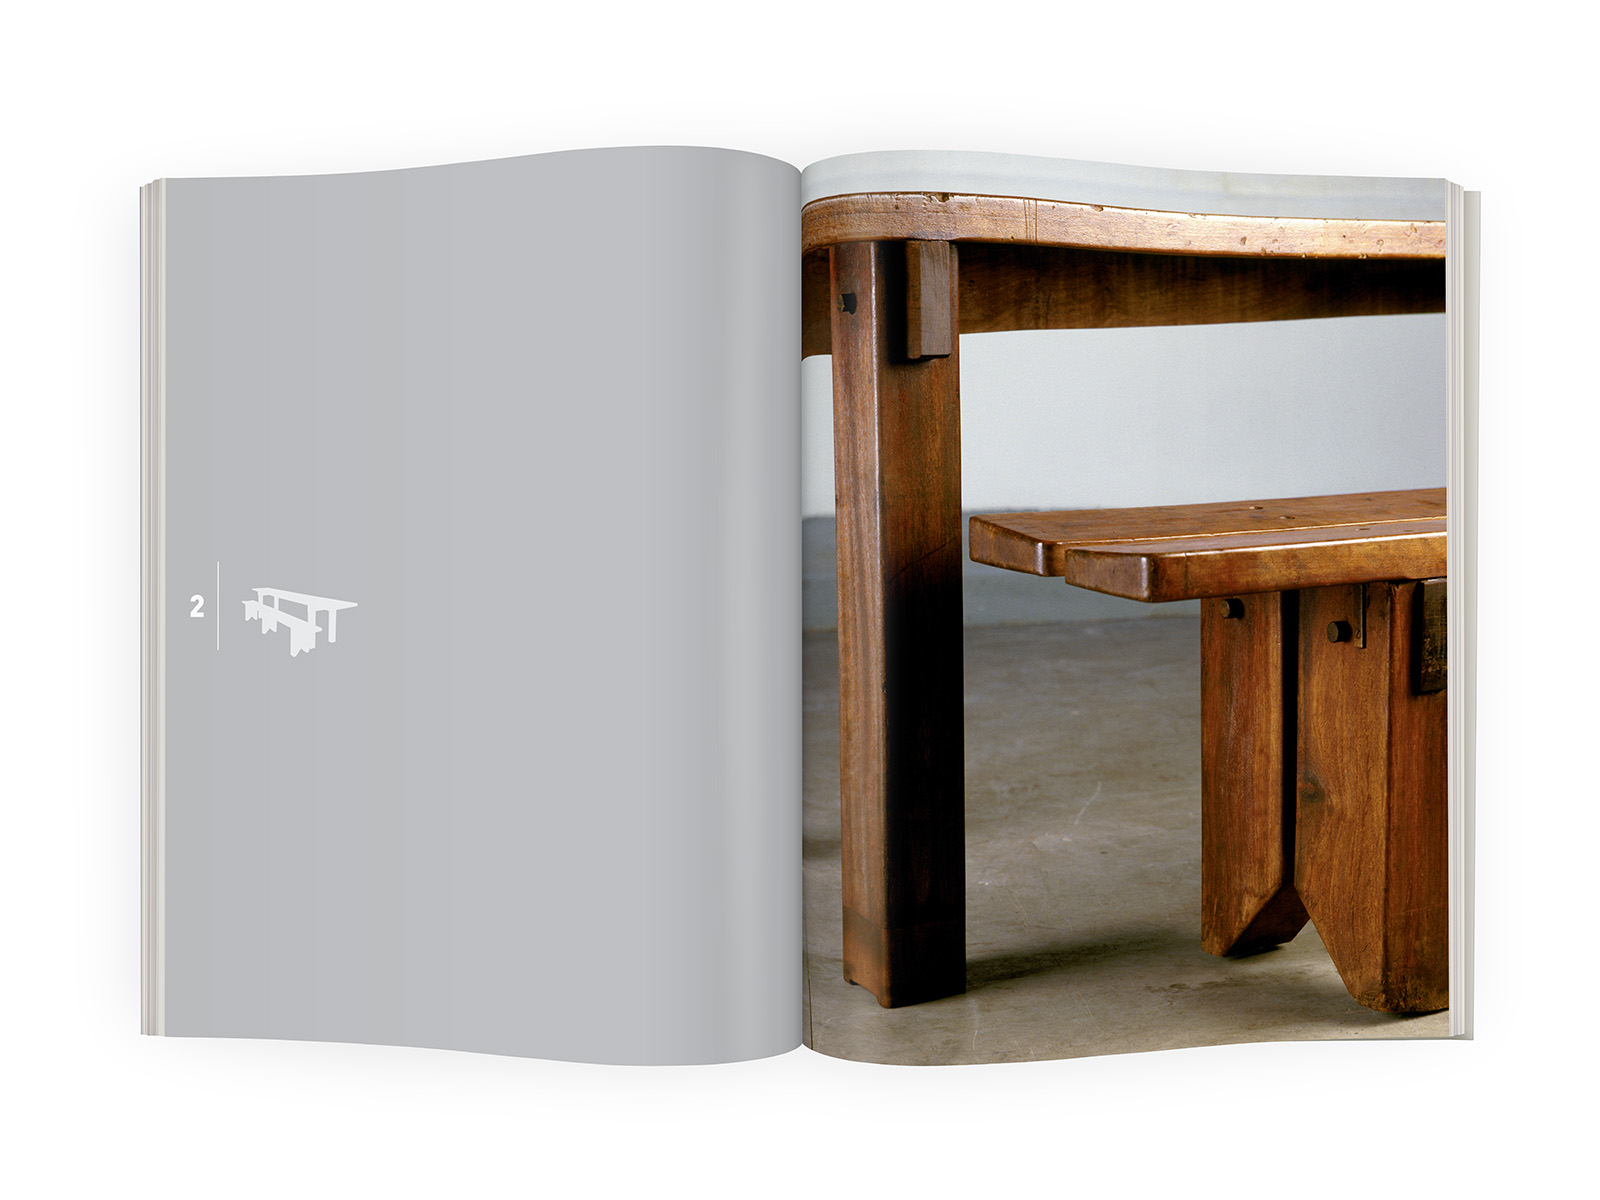 galerieDOWNTOWN - Catalogue Charlotte Perriand Bresil p44-45